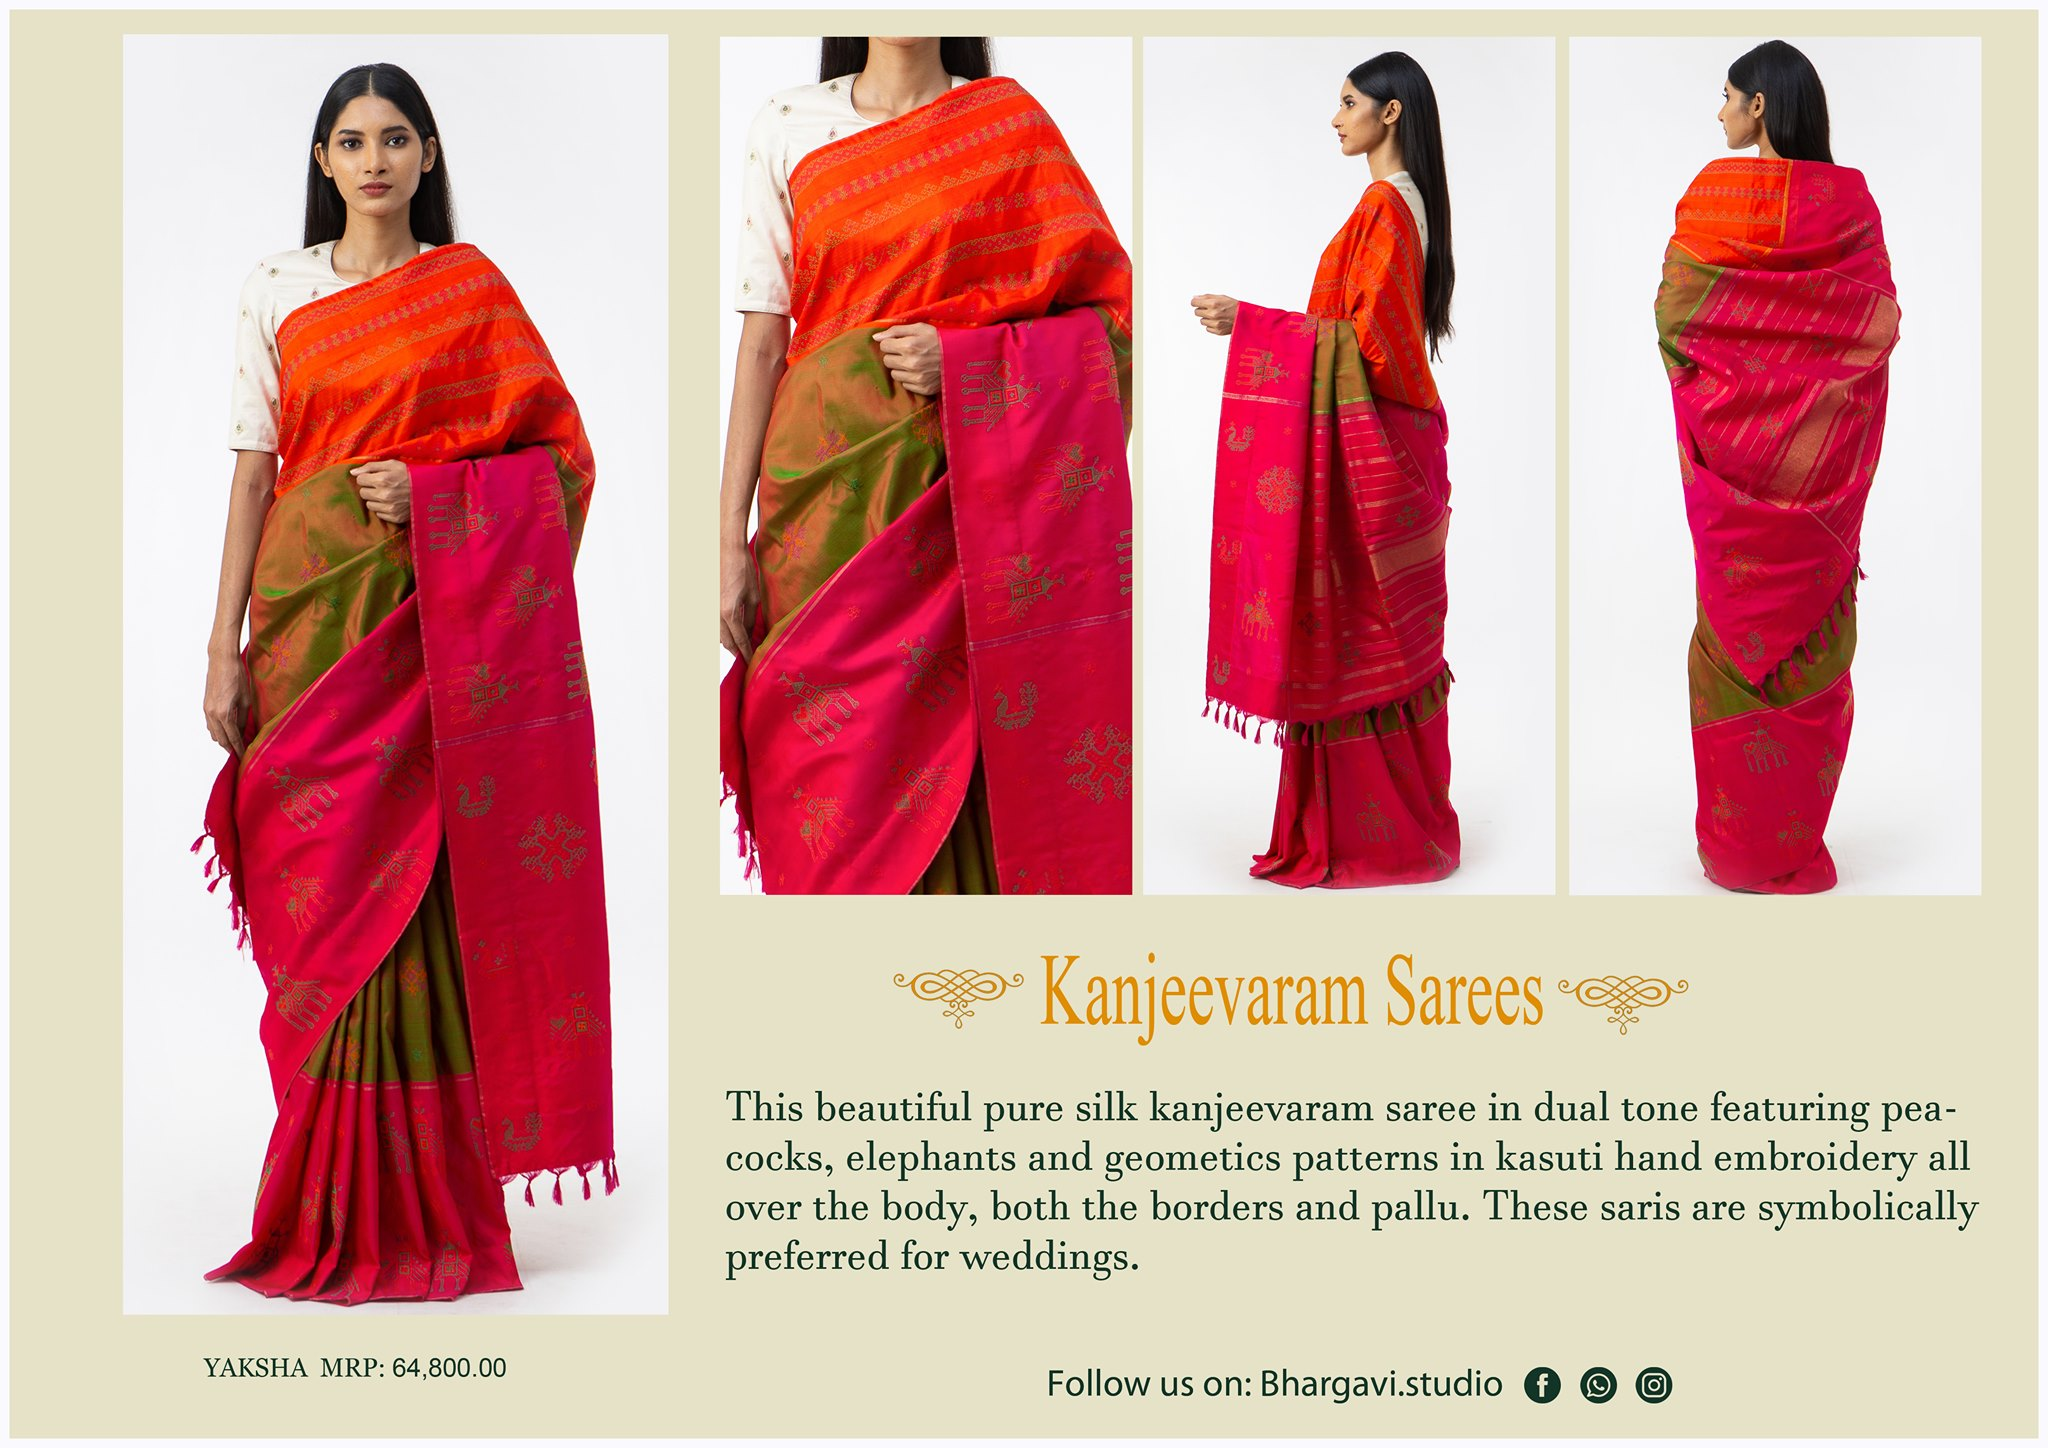 This beautiful pure kanjeevaram saree in dual tone featuring peacocks elephants and geometric patterns in kasuti hand embroidery all over the body both the borders and pallu.  2021-05-13